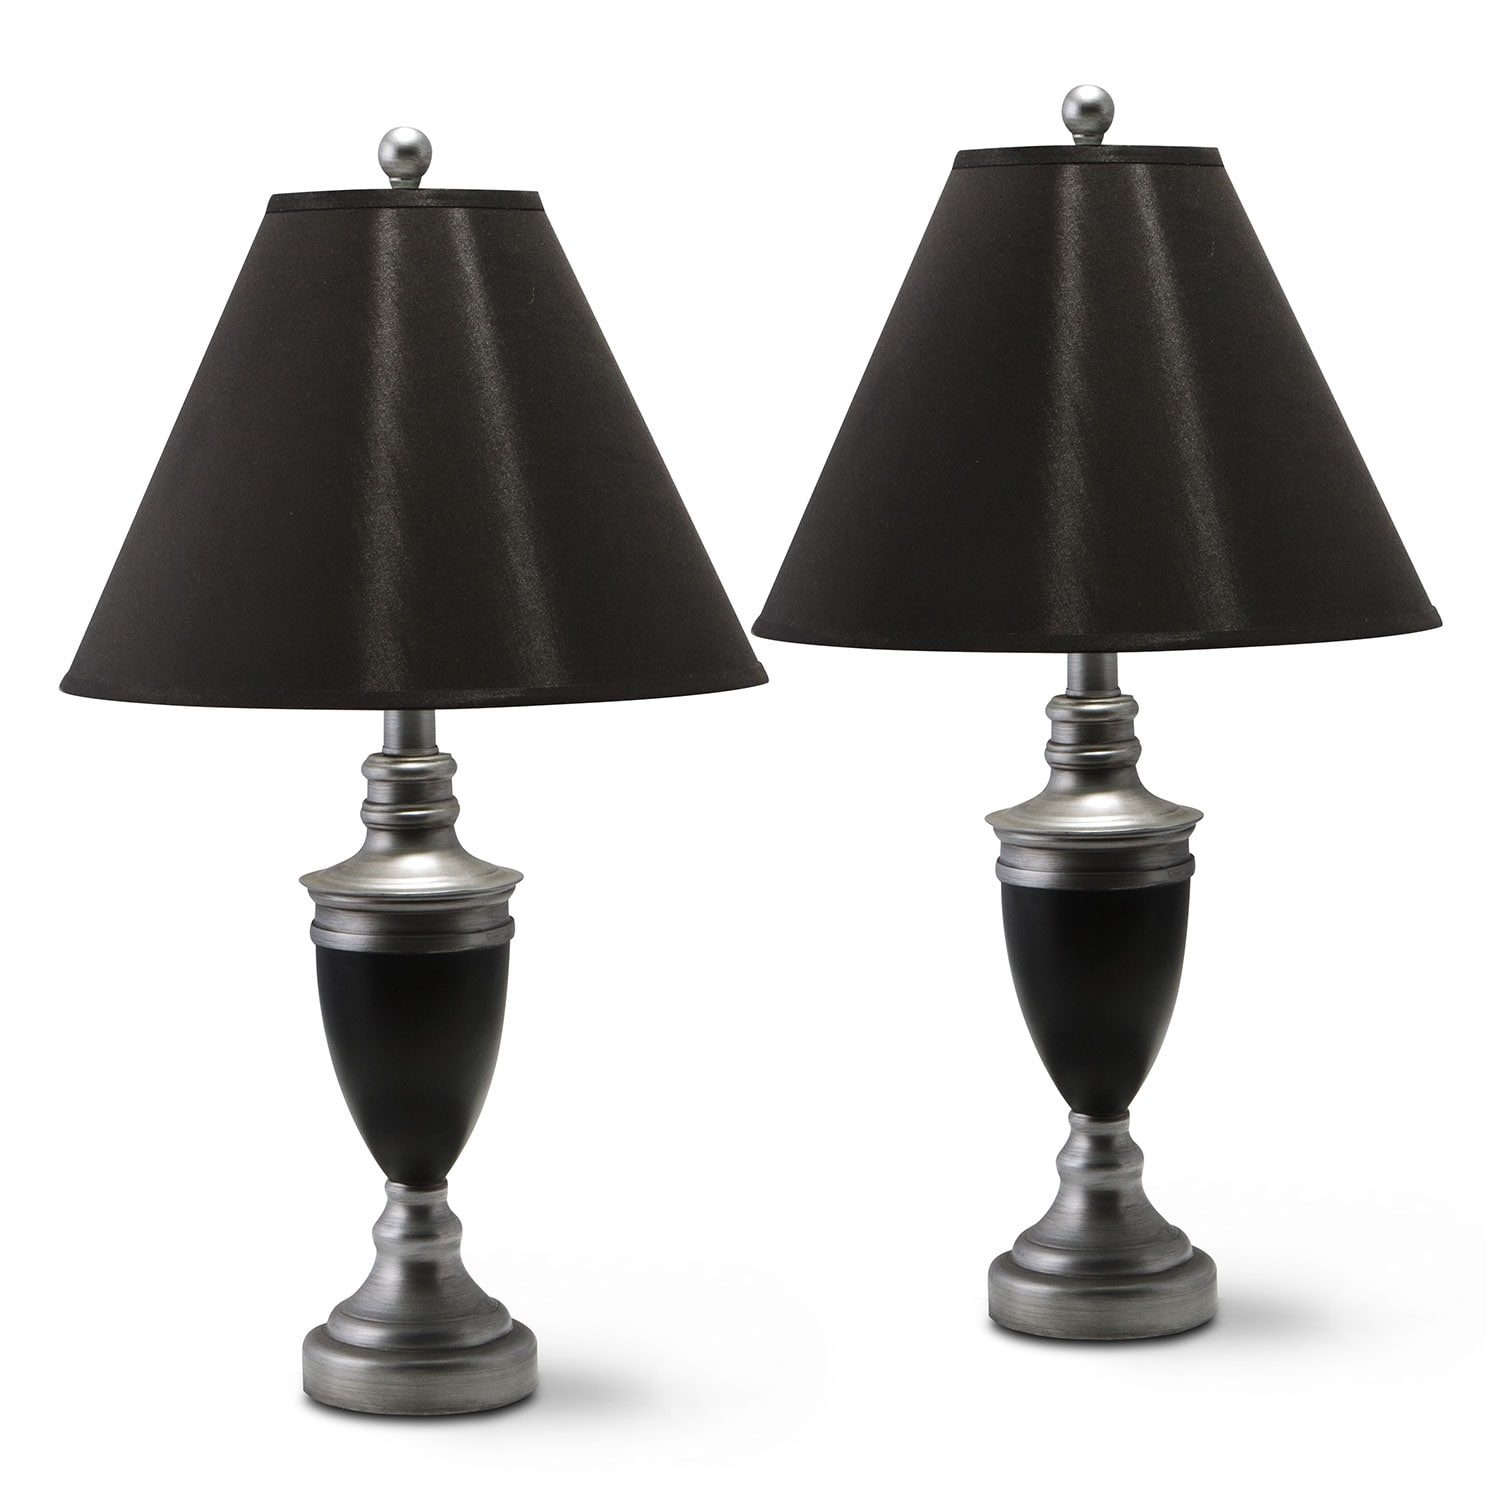 Home Accessories - Nickel 2-Pack Table Lamps